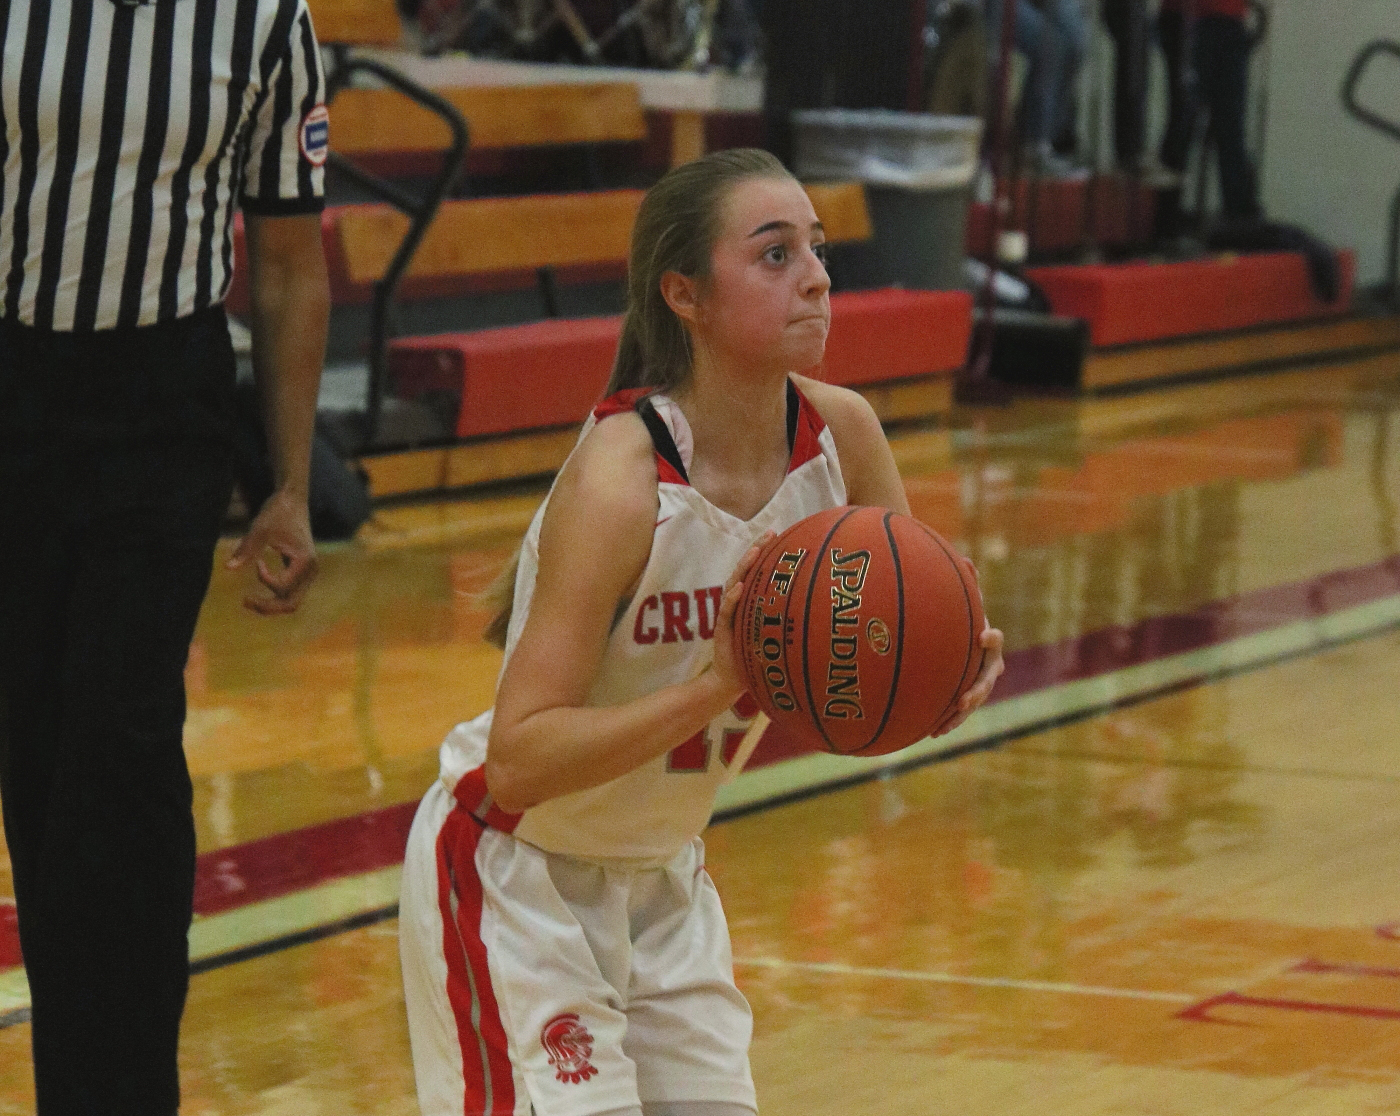 Ashlyn Gerten Lady Crusader